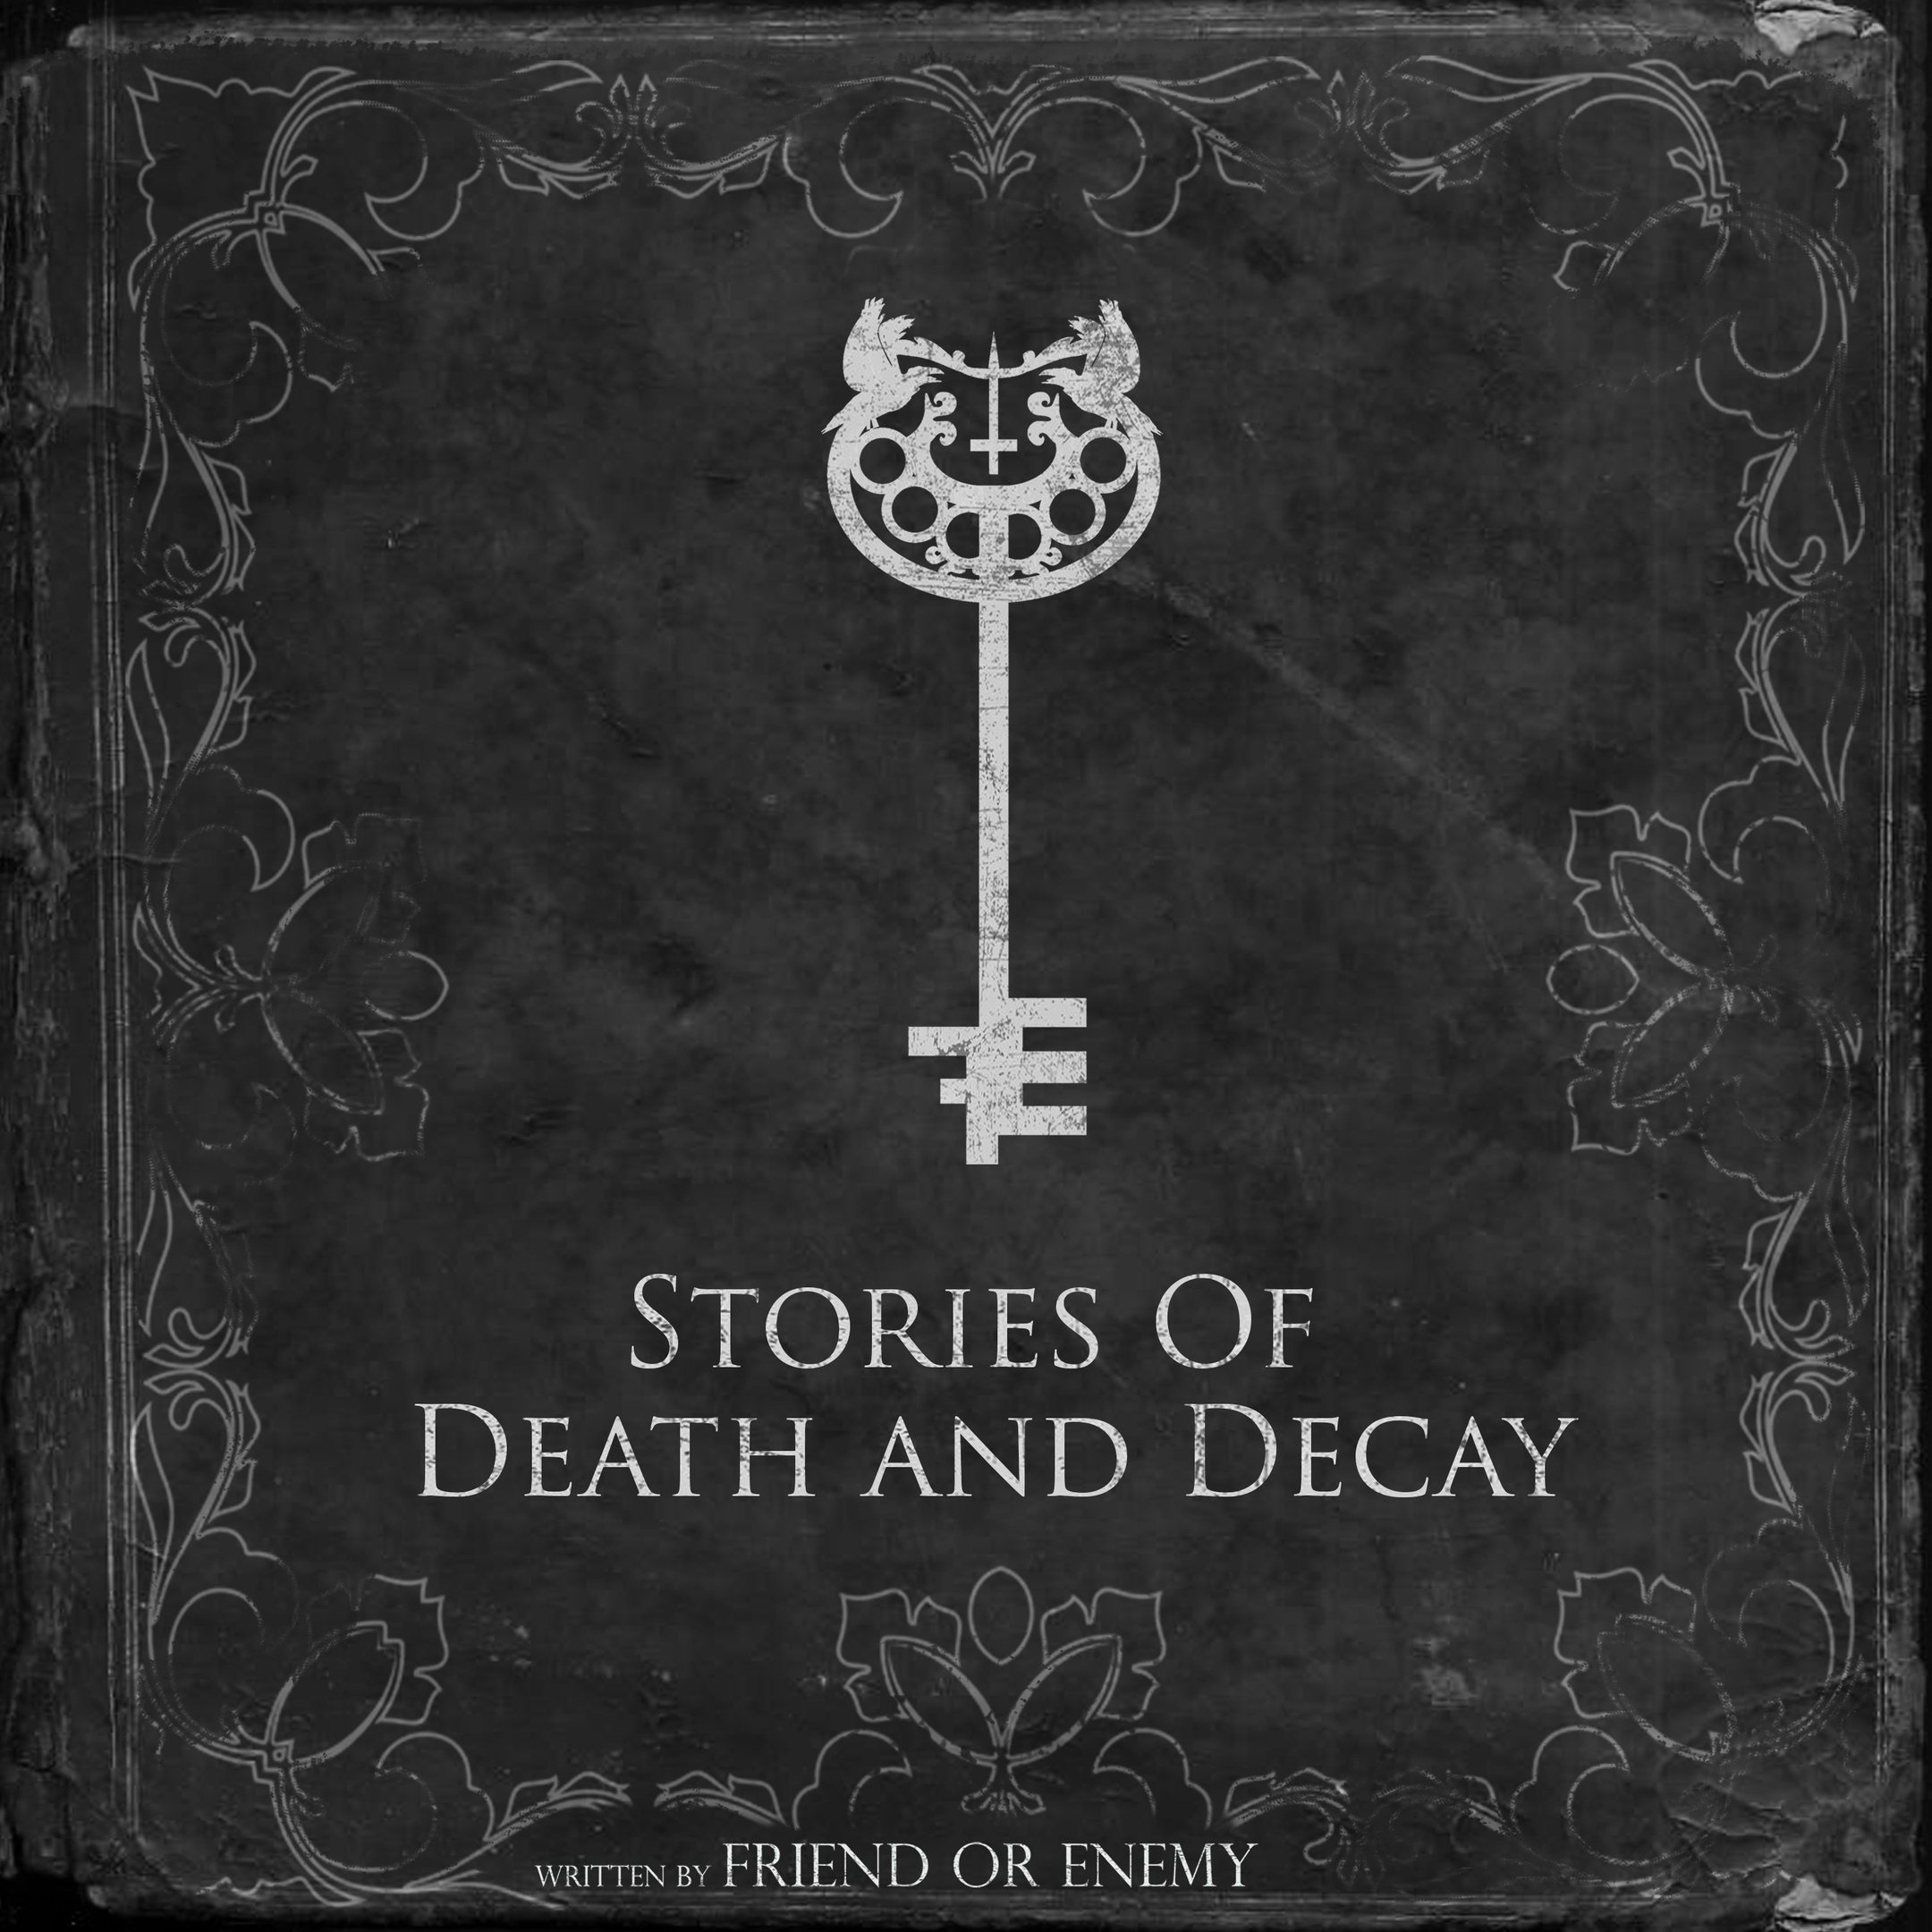 Friend or Enemy - Stories of Death and Decay (2018)